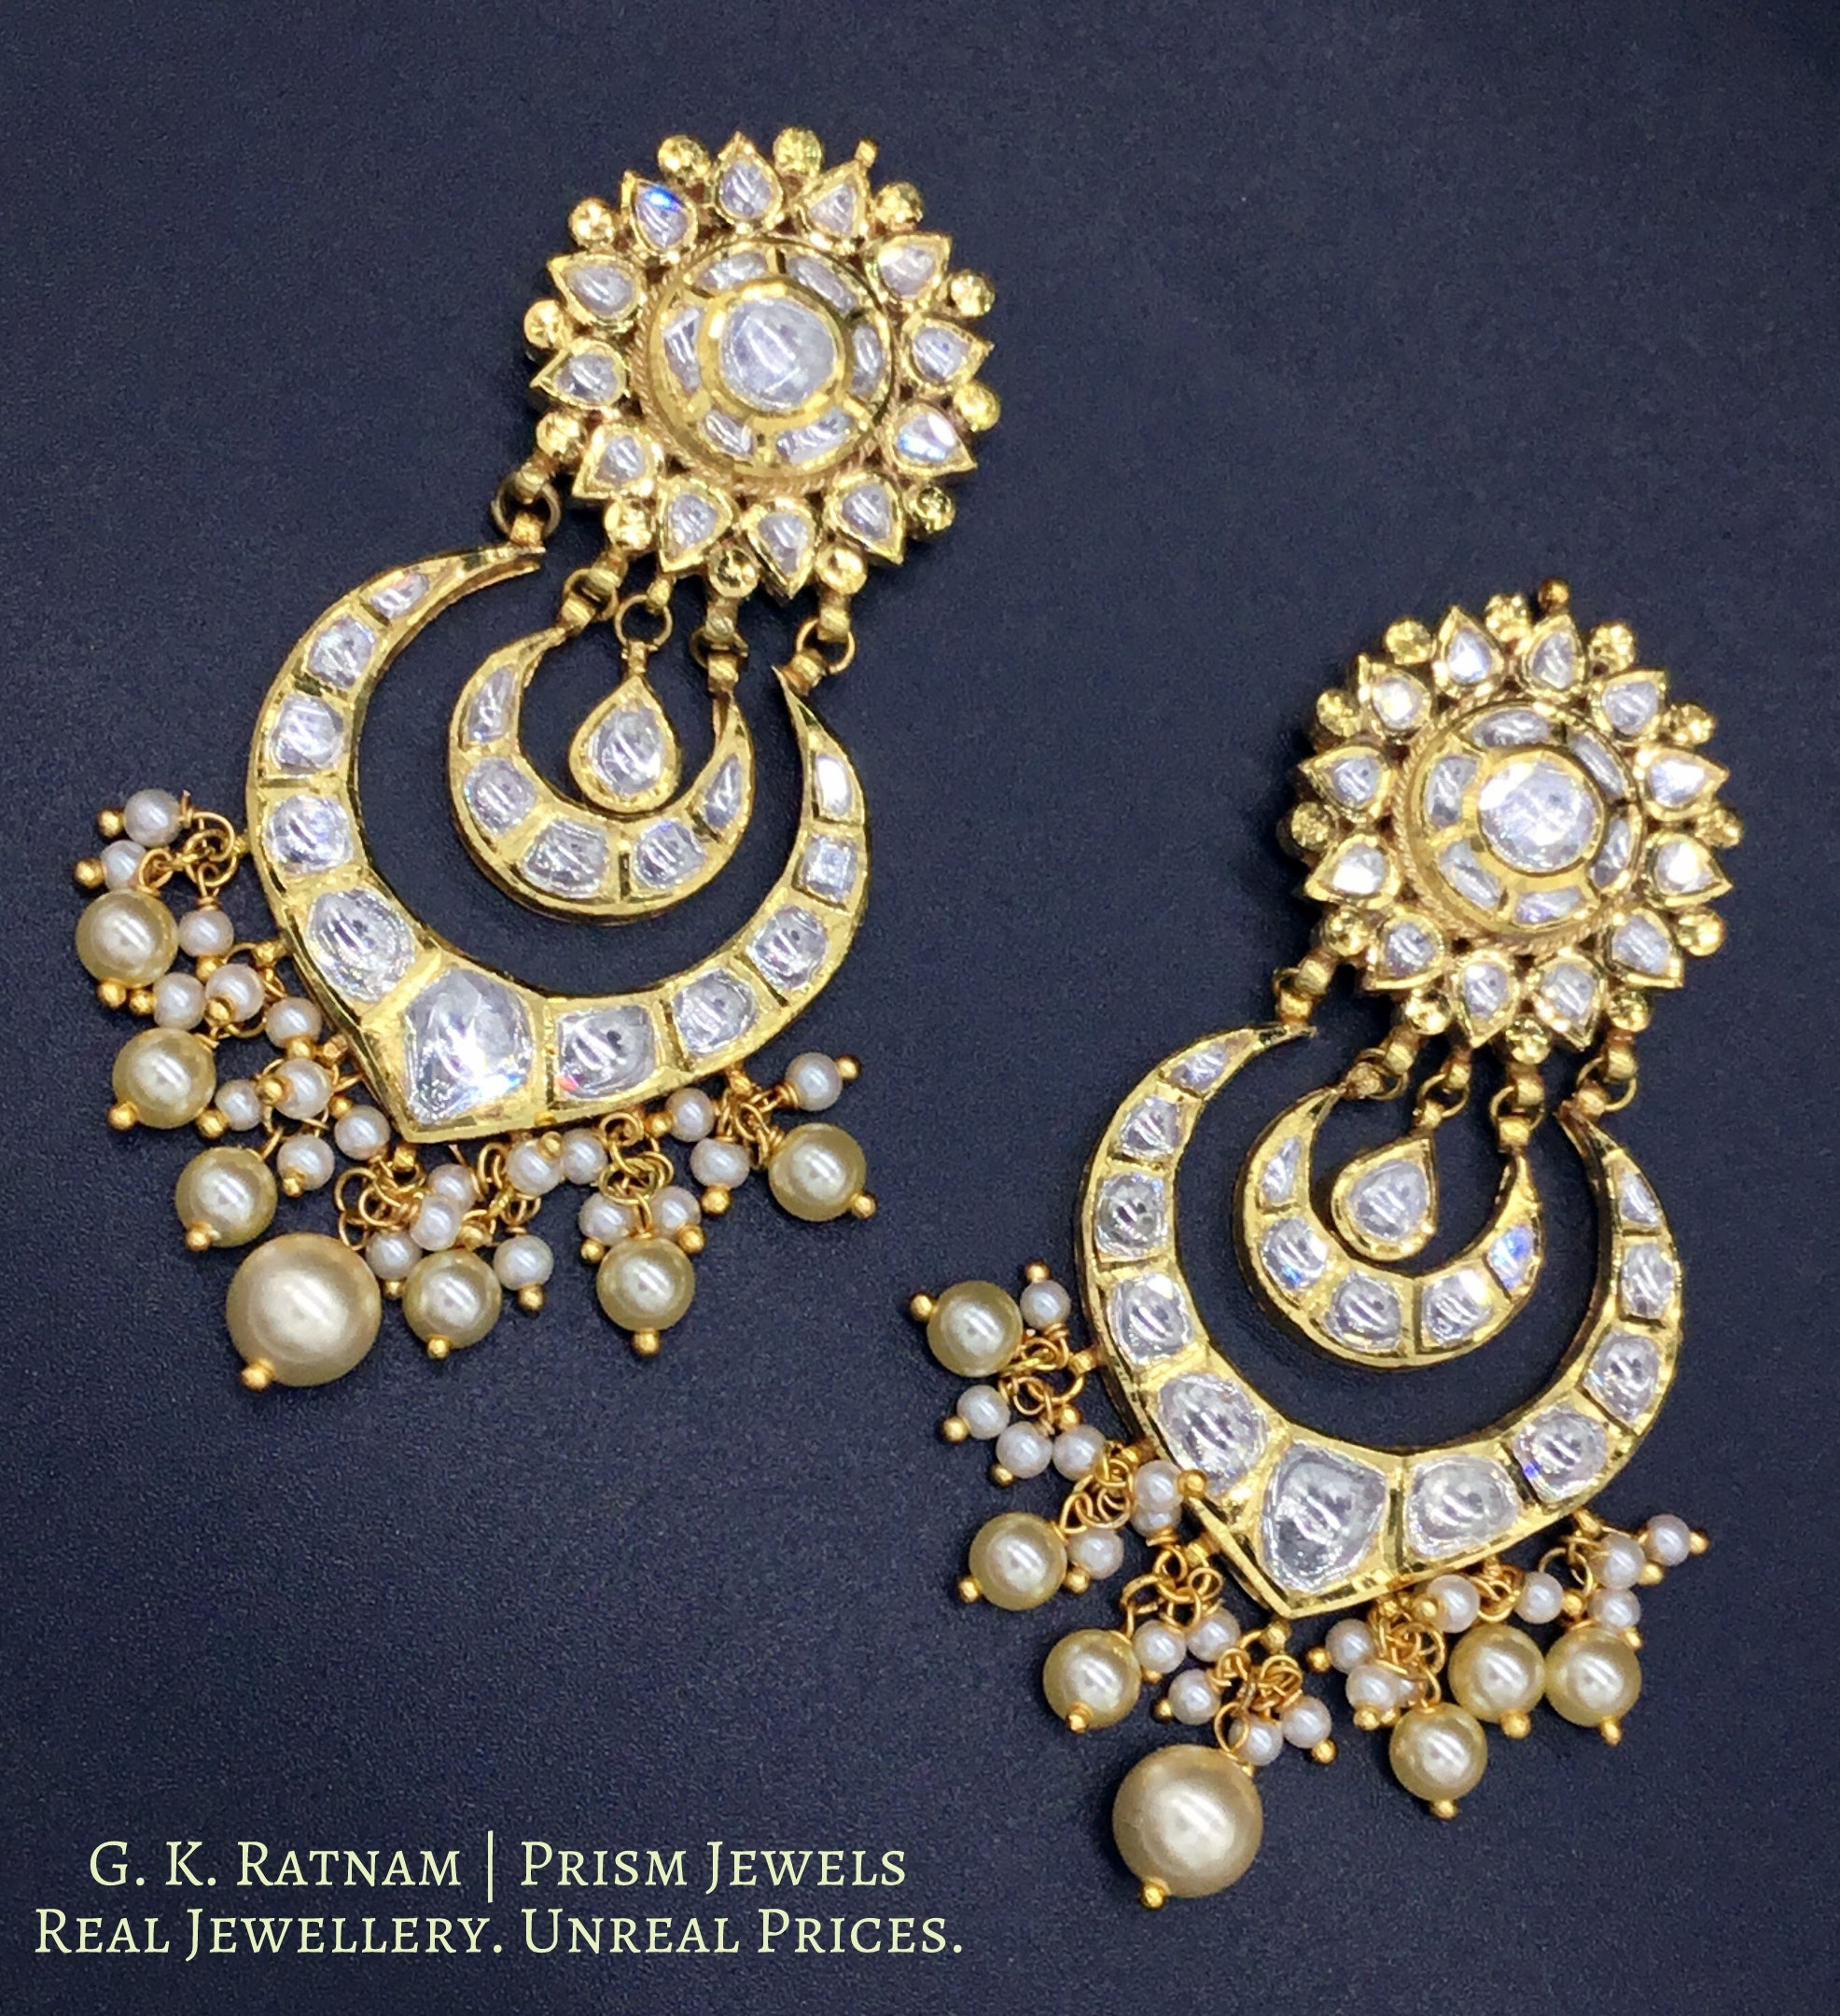 18k Gold and Diamond Polki Chand Bali Earring pair with multiple V-shaped chands - gold diamond polki kundan meena jadau jewellery